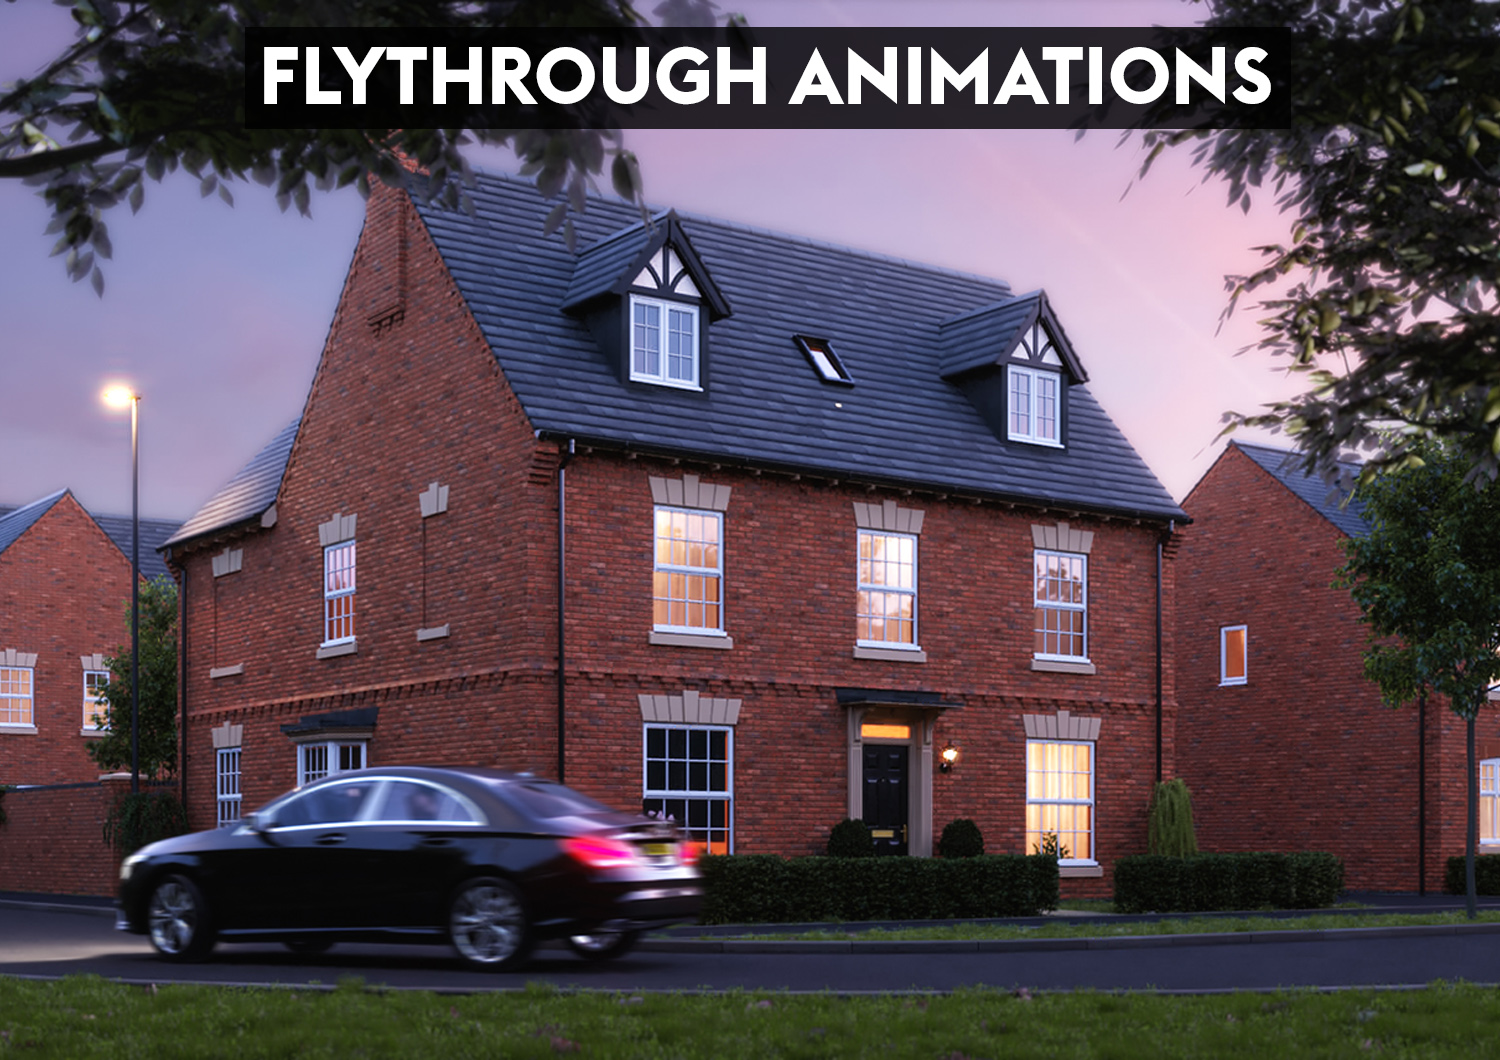 FLYTHROUGH ANIMATIONS